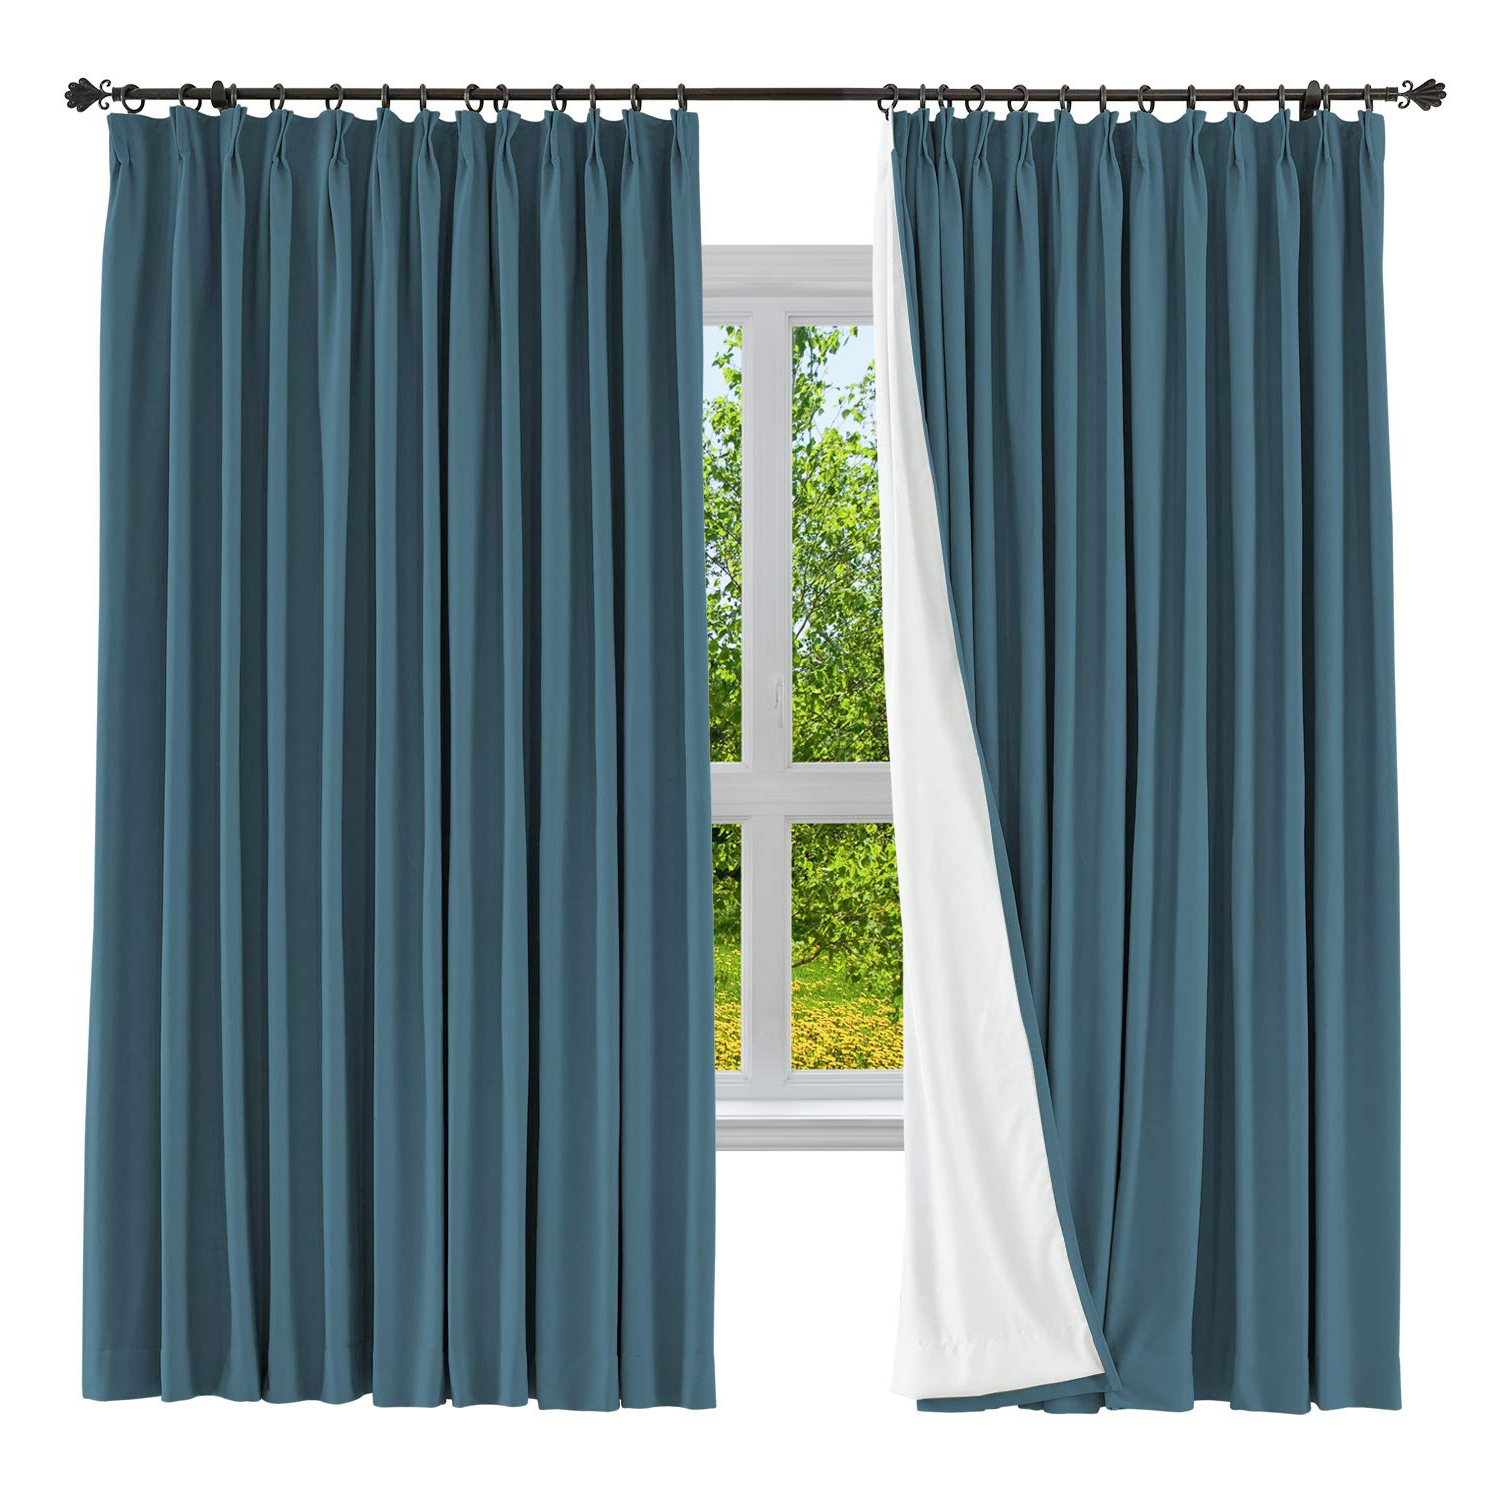 "Cololeaf Blackout Curtain Linen Cotton Drapery Blackout Solid Pinch Pleated  Curtain For Bedroom Living Room Family Room, 84"" W X 84"" L (Dark Blue, 1 Throughout Widely Used Solid Cotton Pleated Curtains (View 6 of 20)"